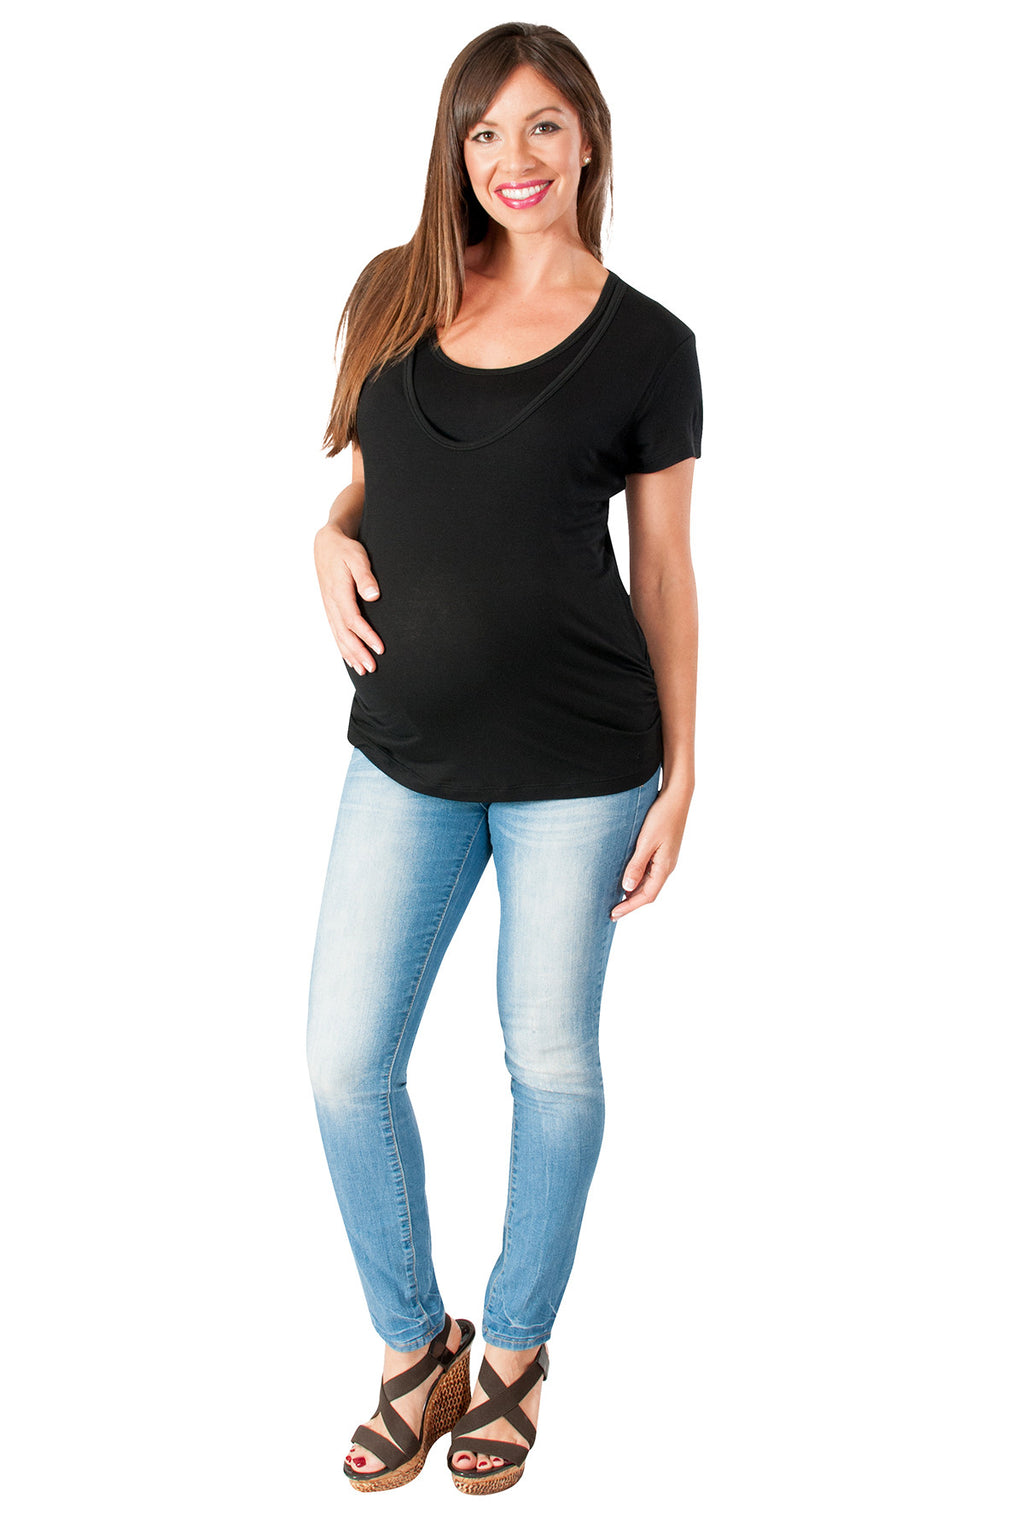 Scoop Neck Nursing Top - Mommylicious